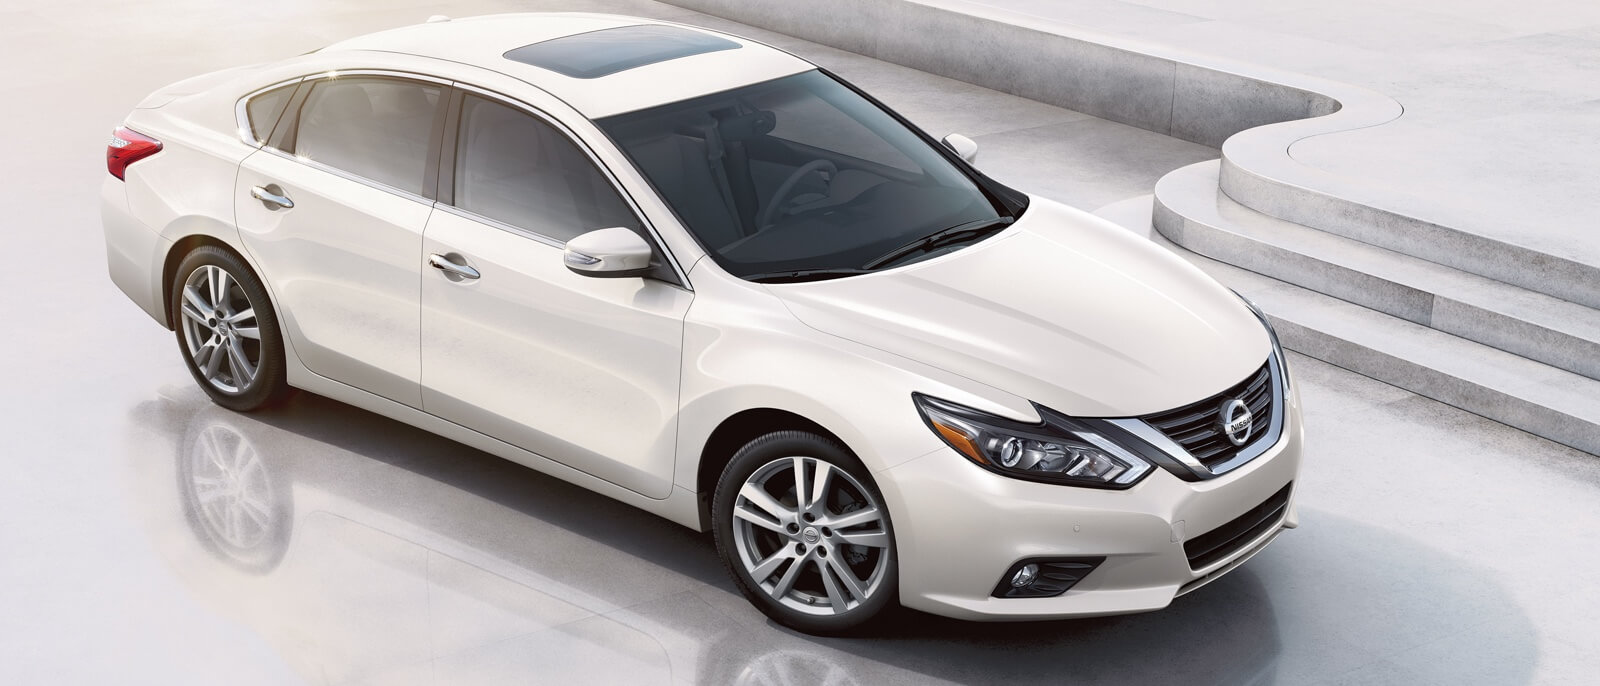 2016 Nissan Altima white exterior on display